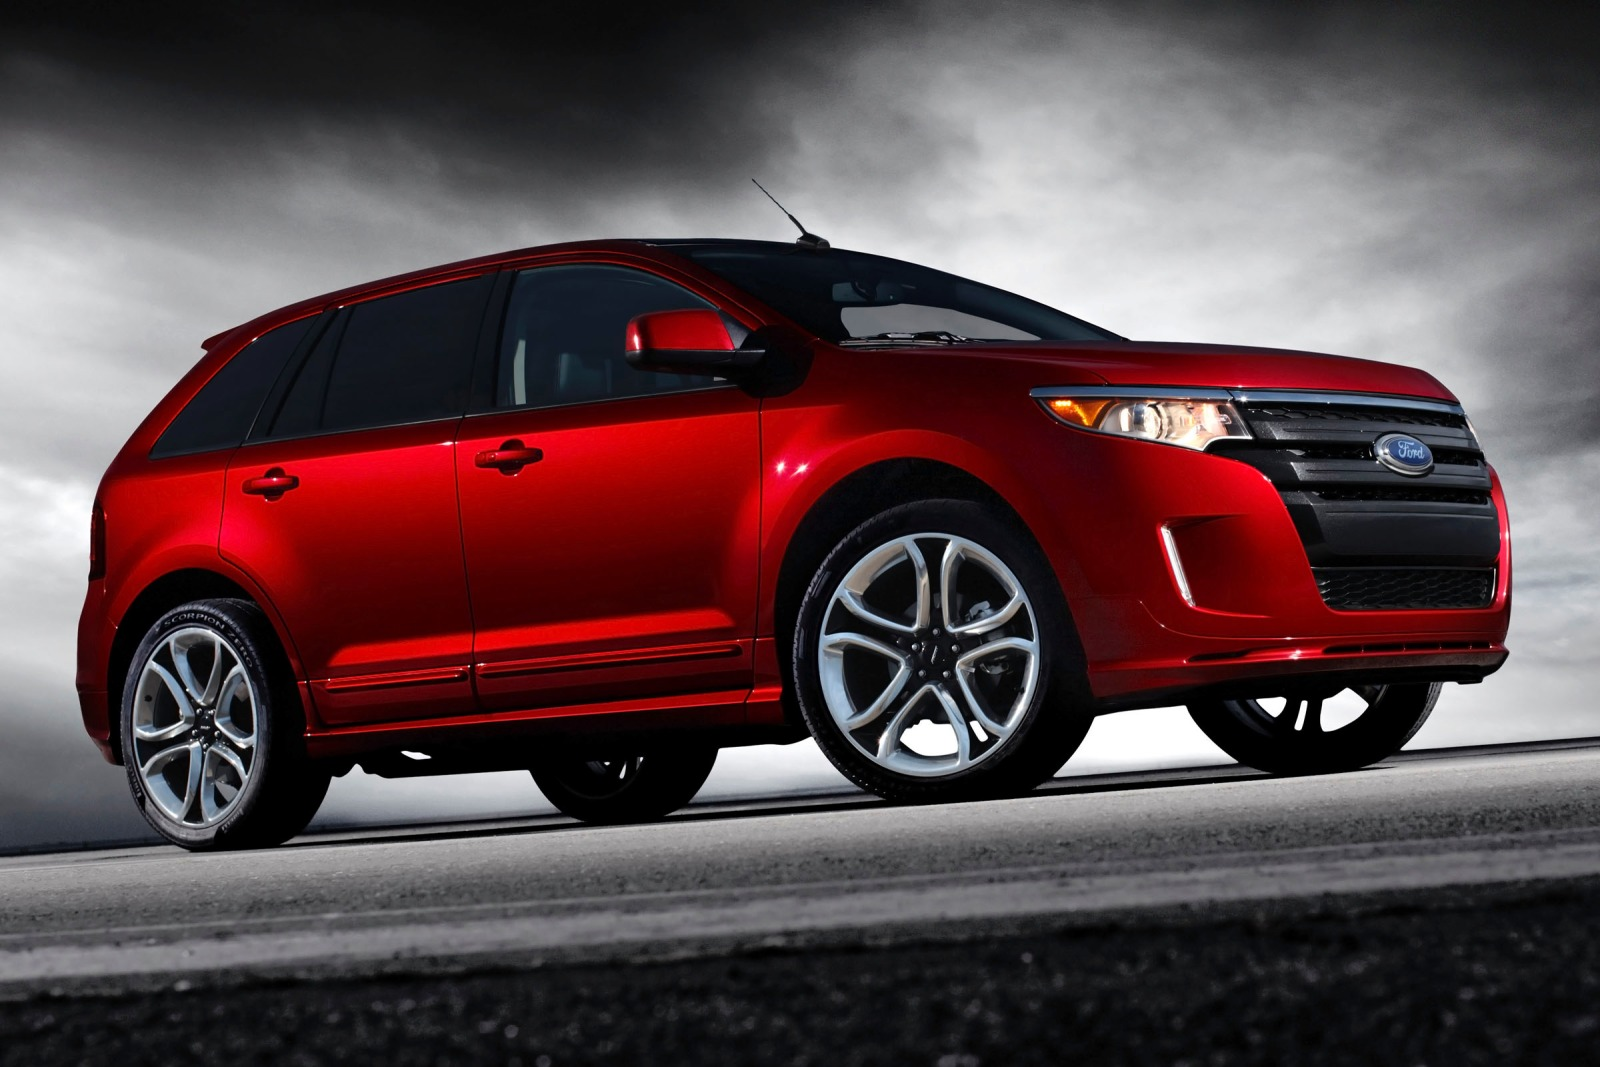 2013 Ford Edge 4dr SUV Re exterior #2